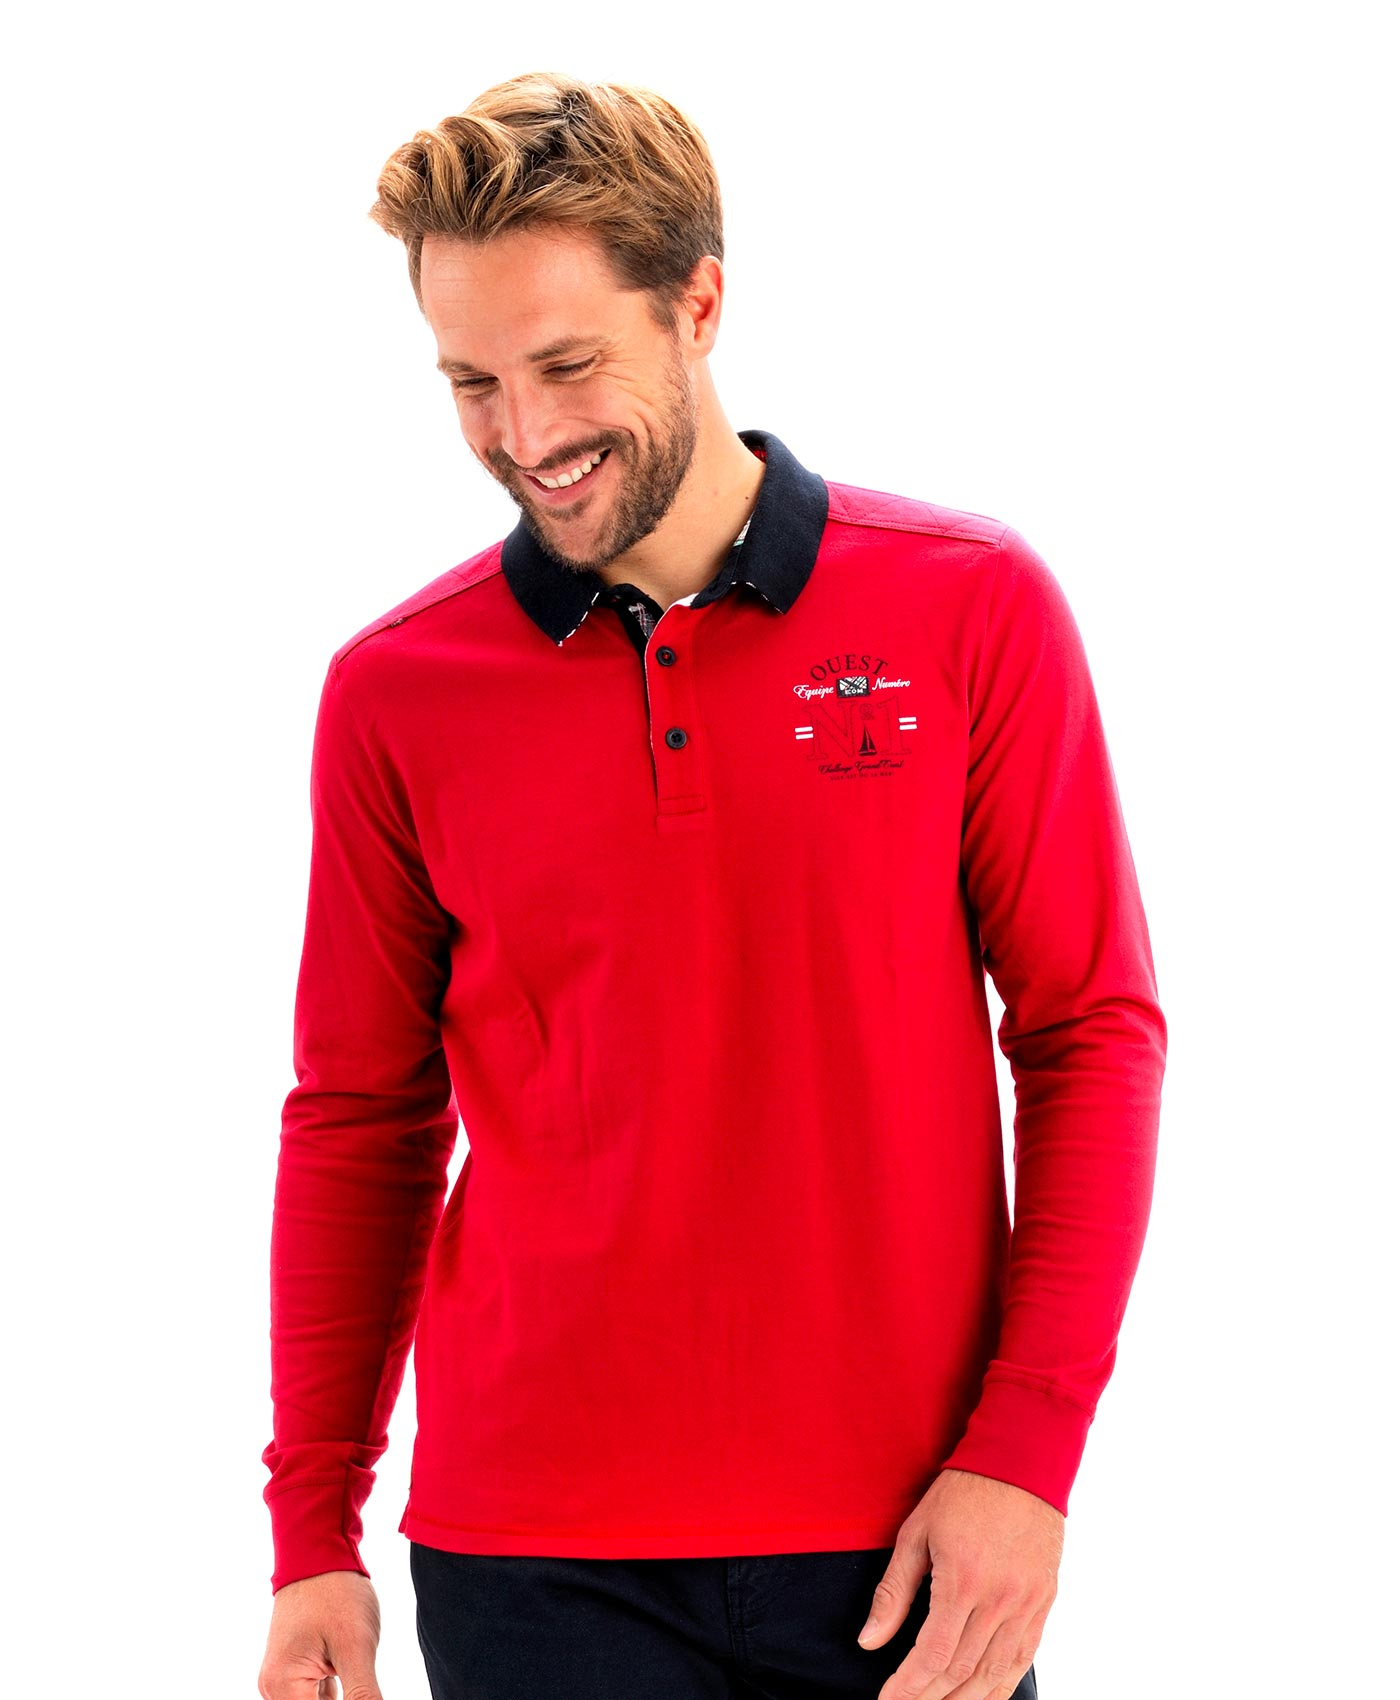 Polo manches longues homme piment - Mode marine Homme